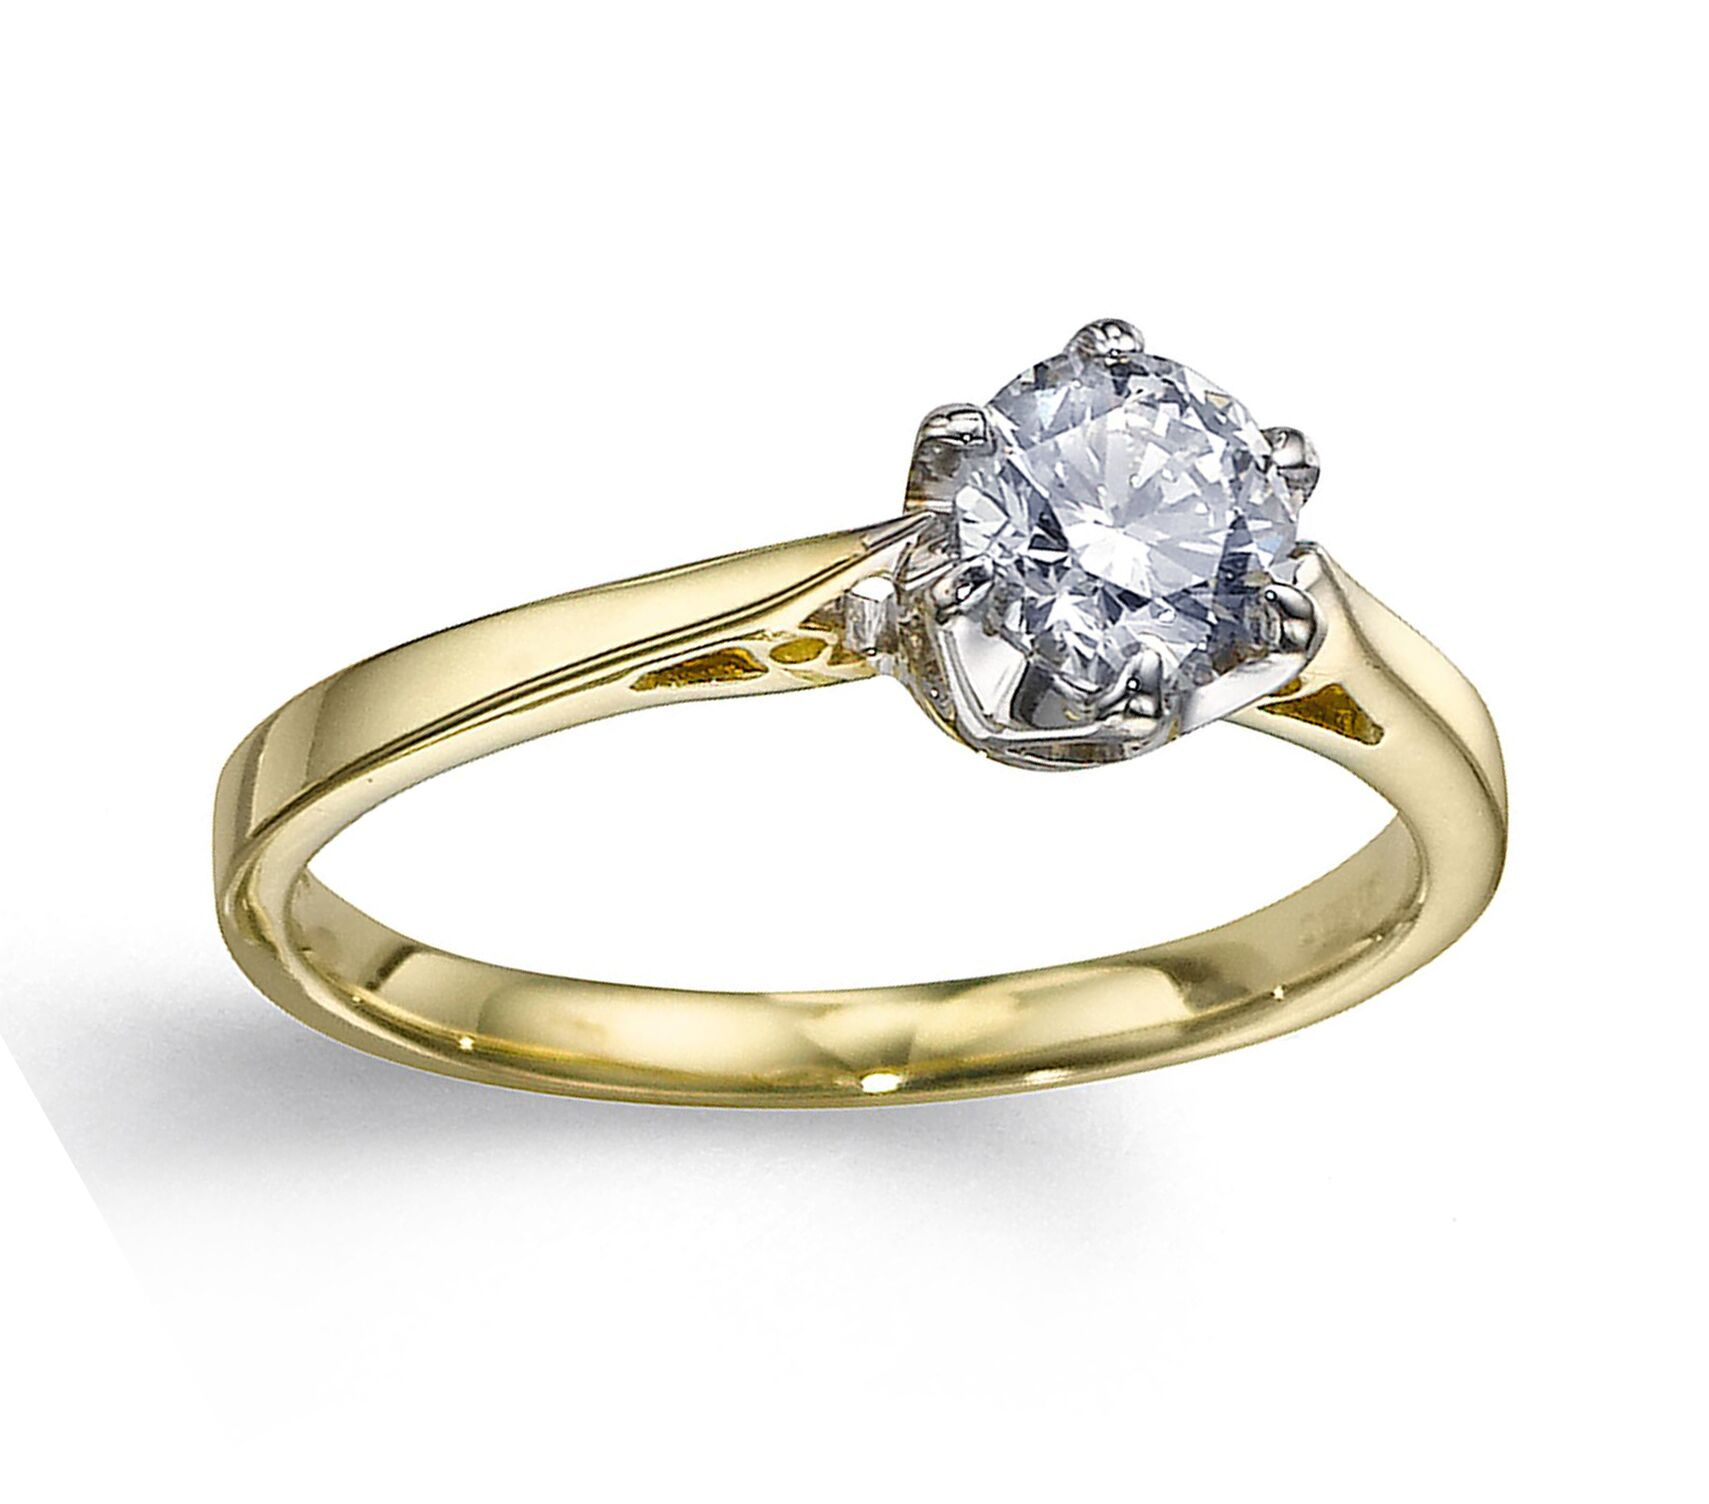 6 Claw Diamond Solitaire Engagement 9ct Yellow Gold Ring RRP £1140 Size L